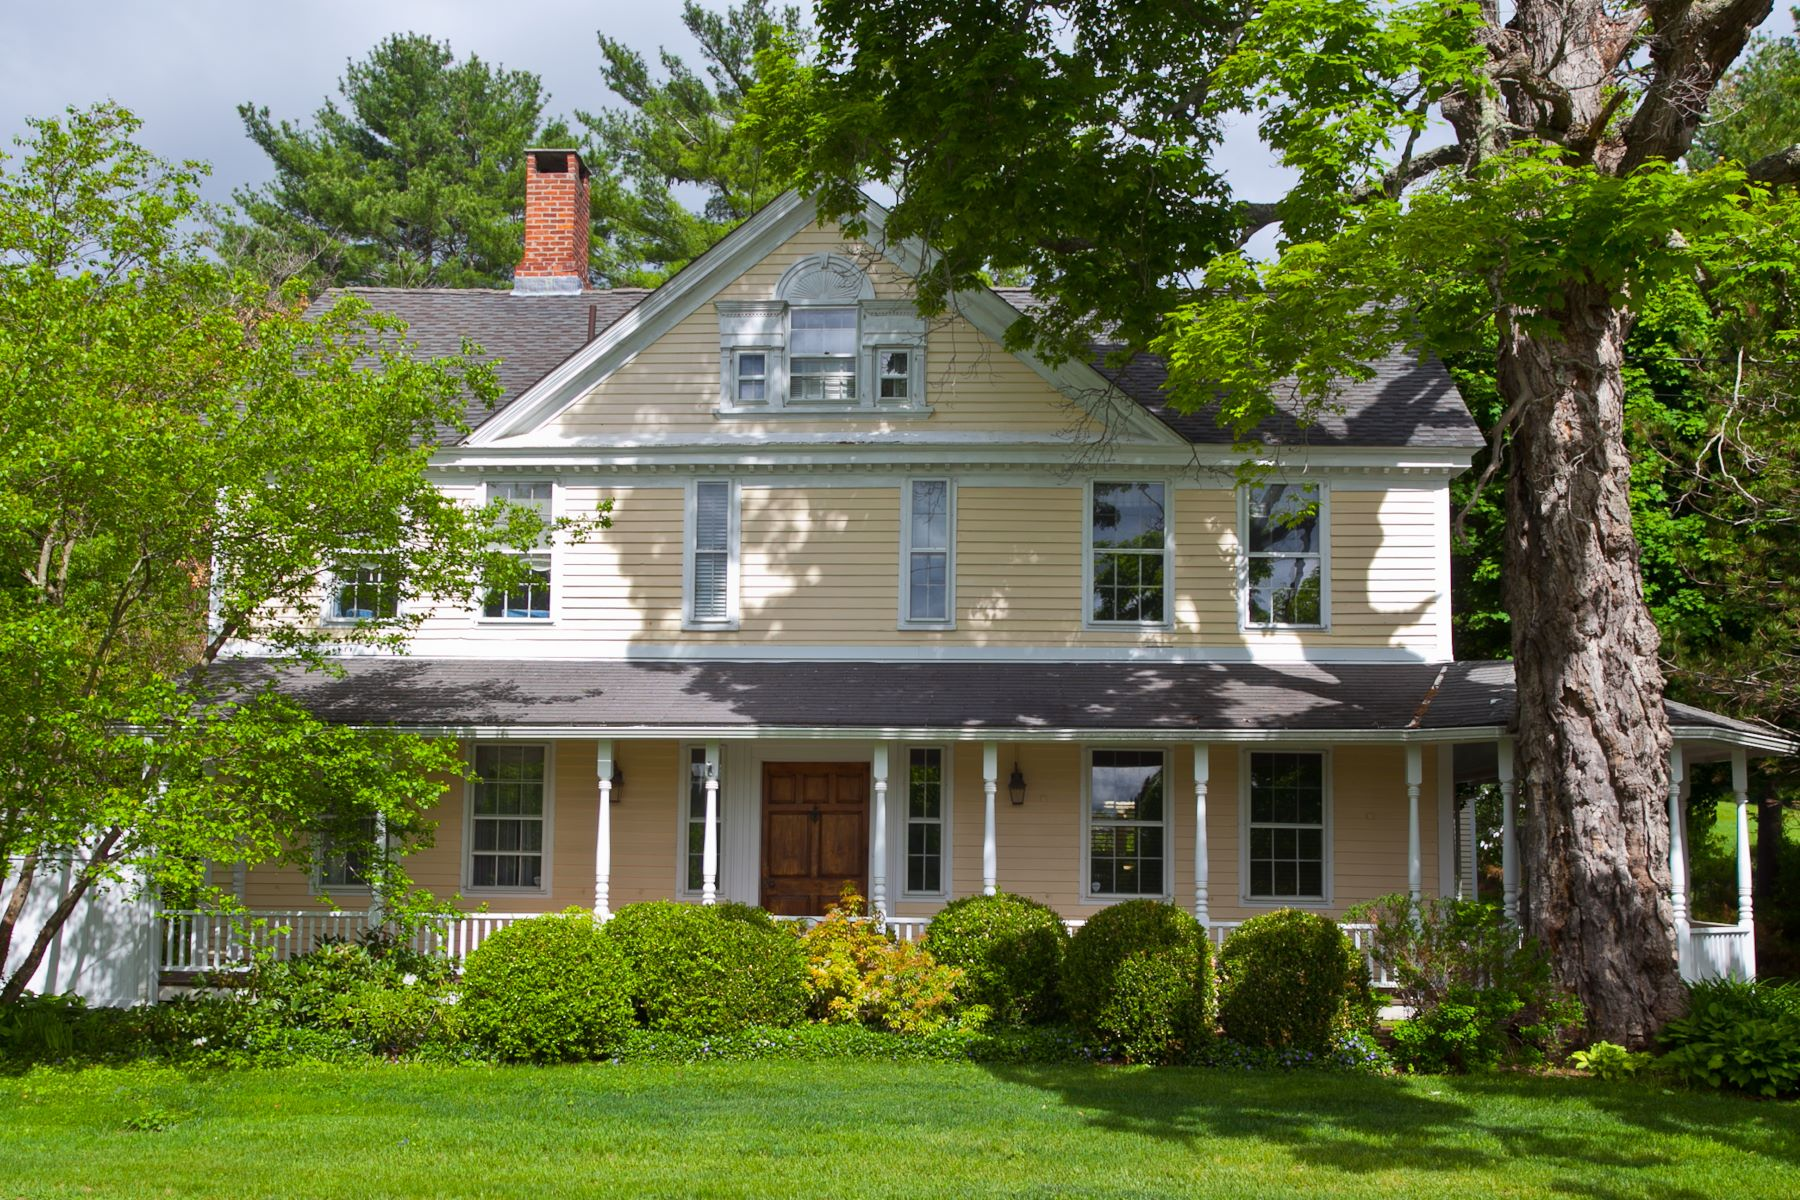 Casa Unifamiliar por un Venta en Salisbury Landmark 482 Undermountain Road Salisbury, Connecticut 06068 Estados Unidos